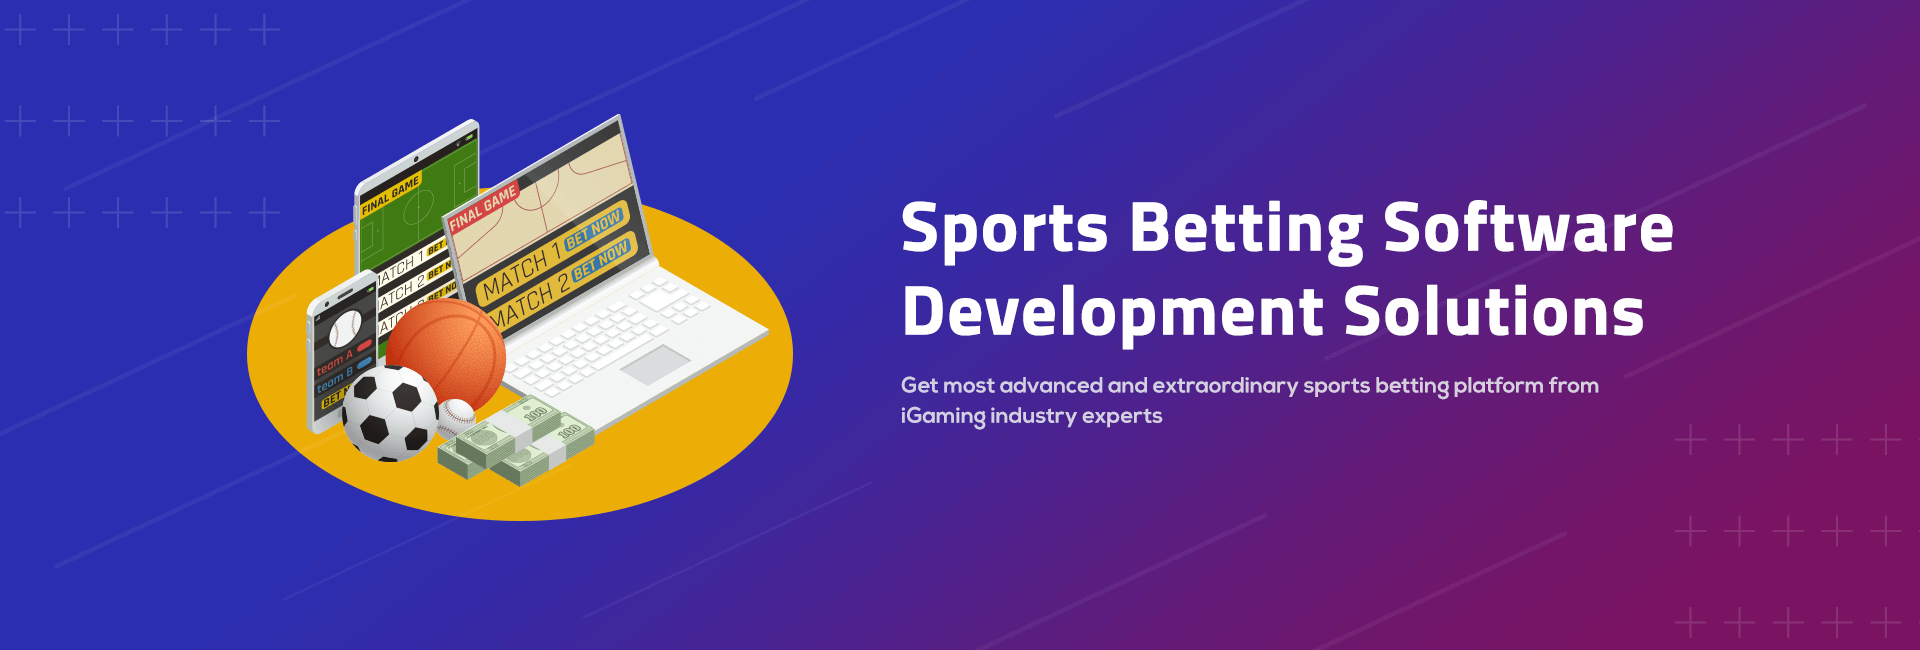 Sports Betting Software Development Solutions